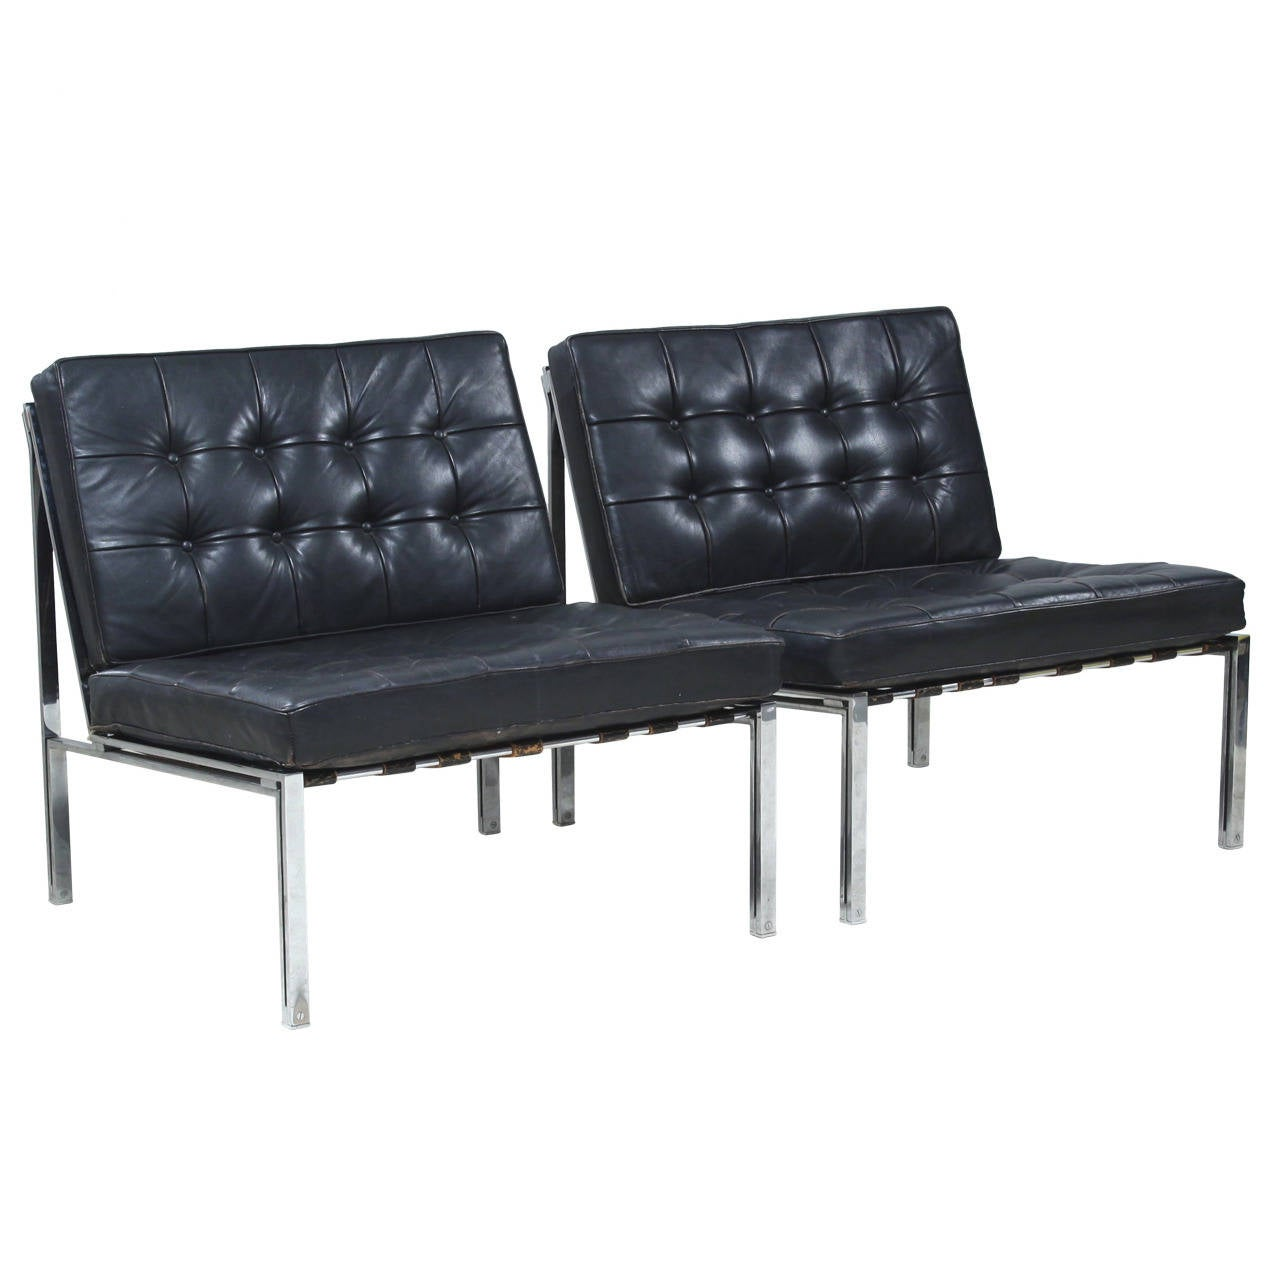 John Widdicomb Furniture For Sale ... Side Chairs with Black Leather Tufted Cushions For Sale at 1stdibs